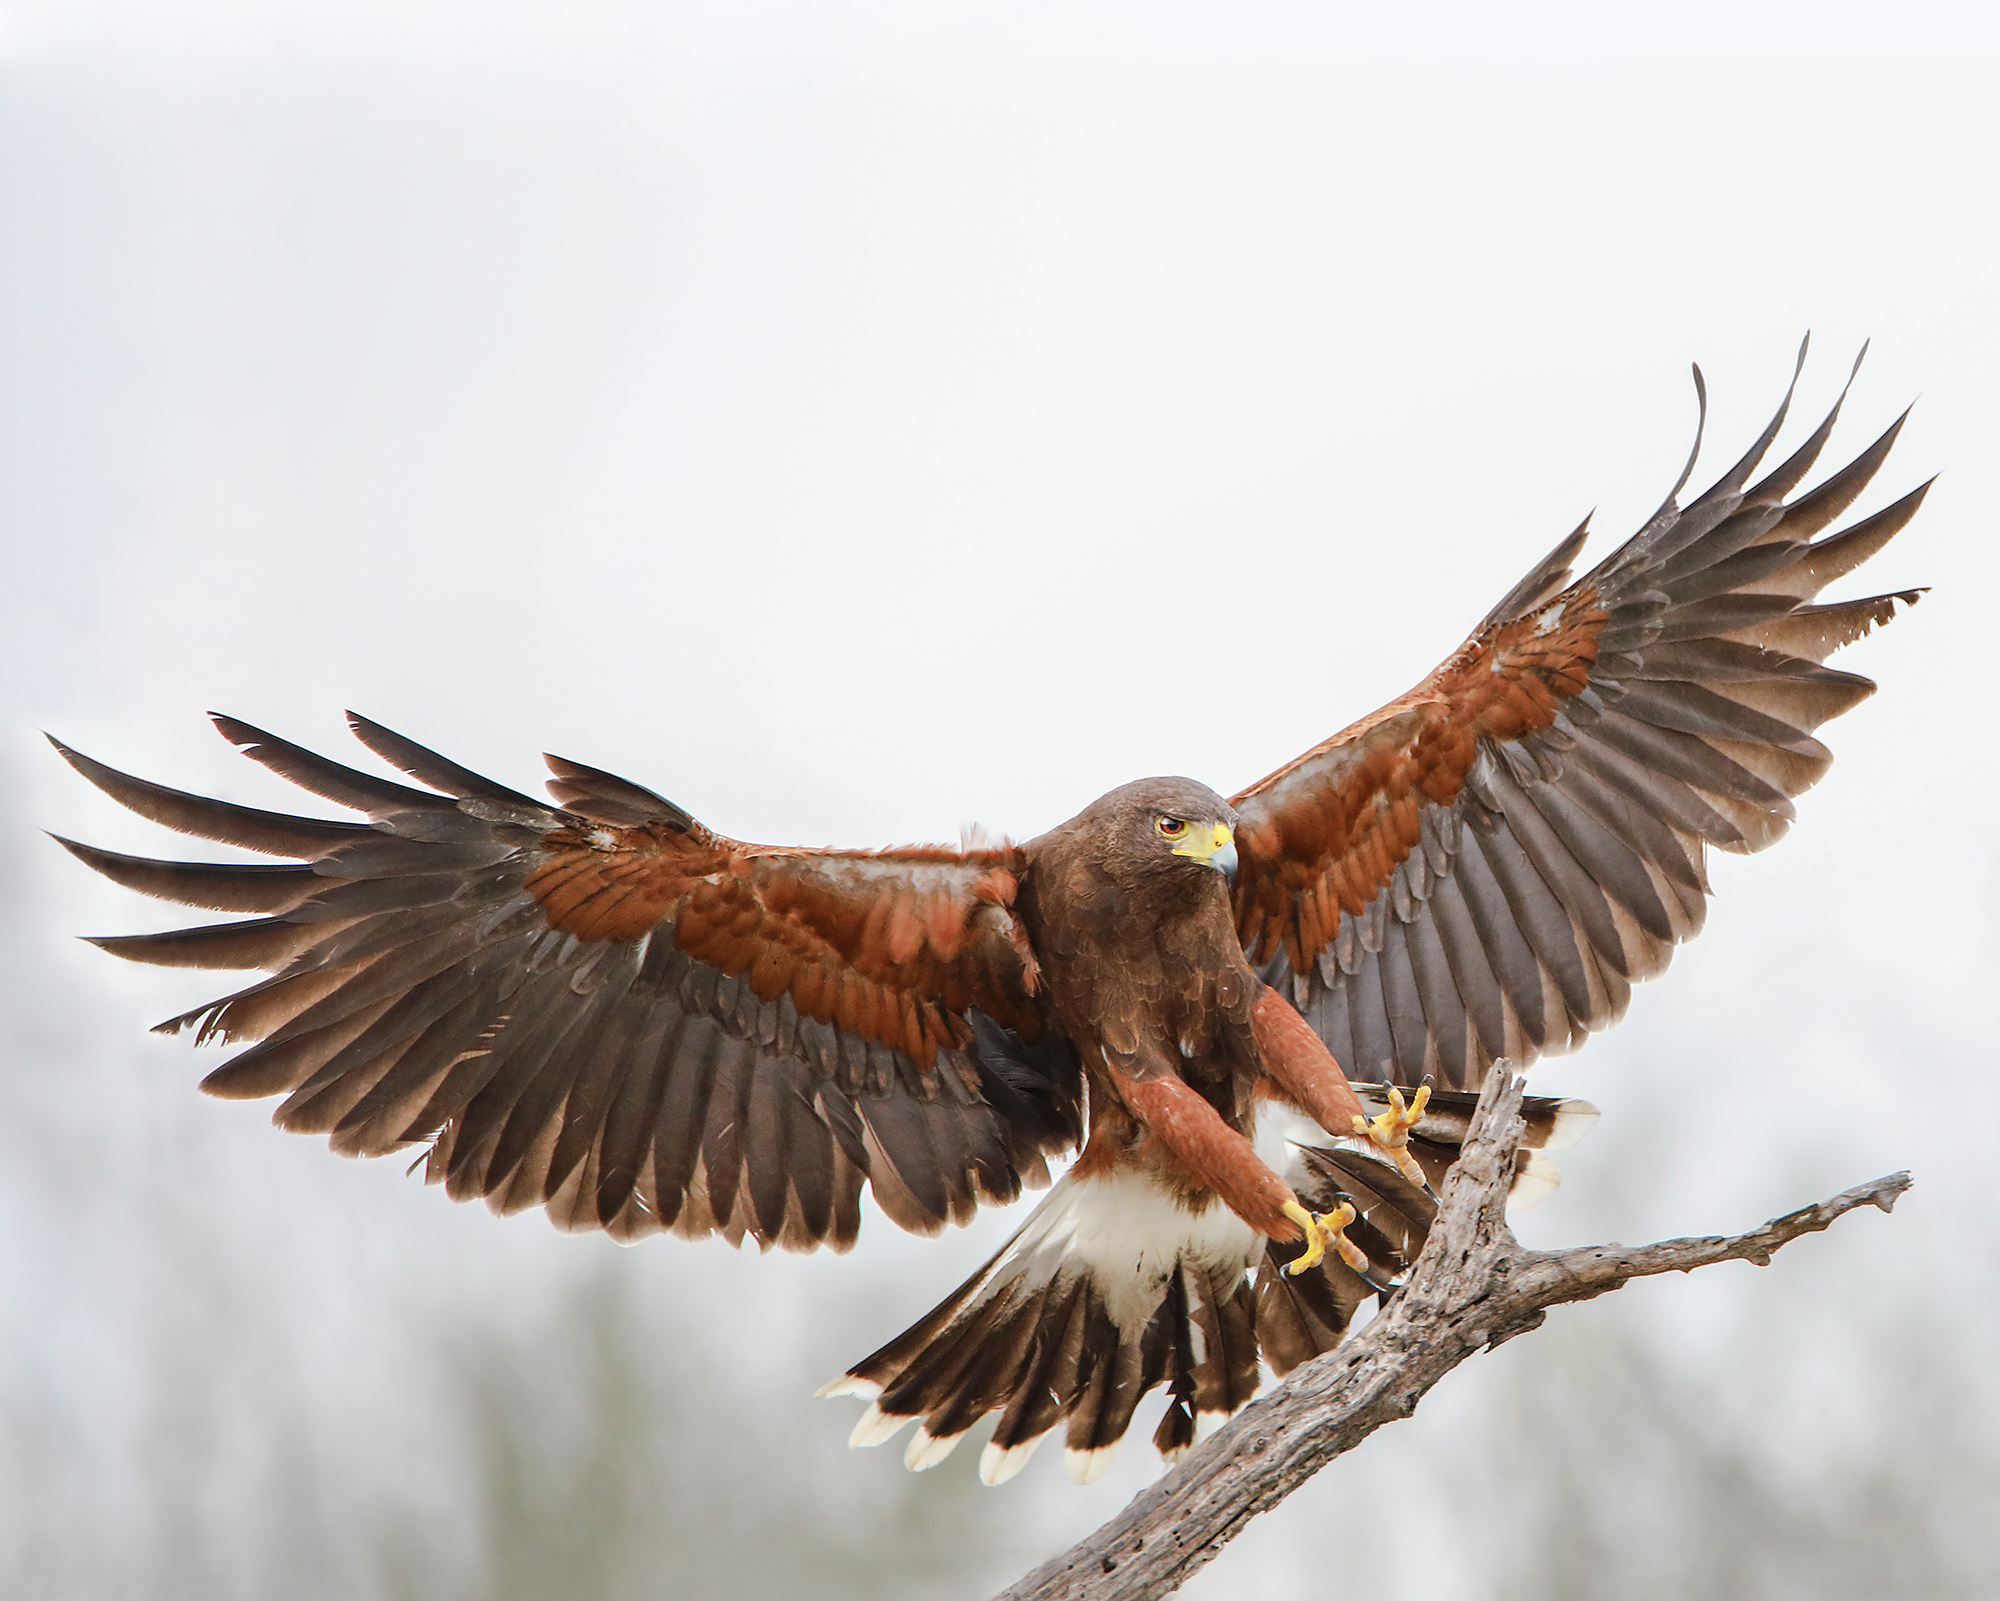 17. Harris Hawk, off Martin Refuge, Mission, Texas